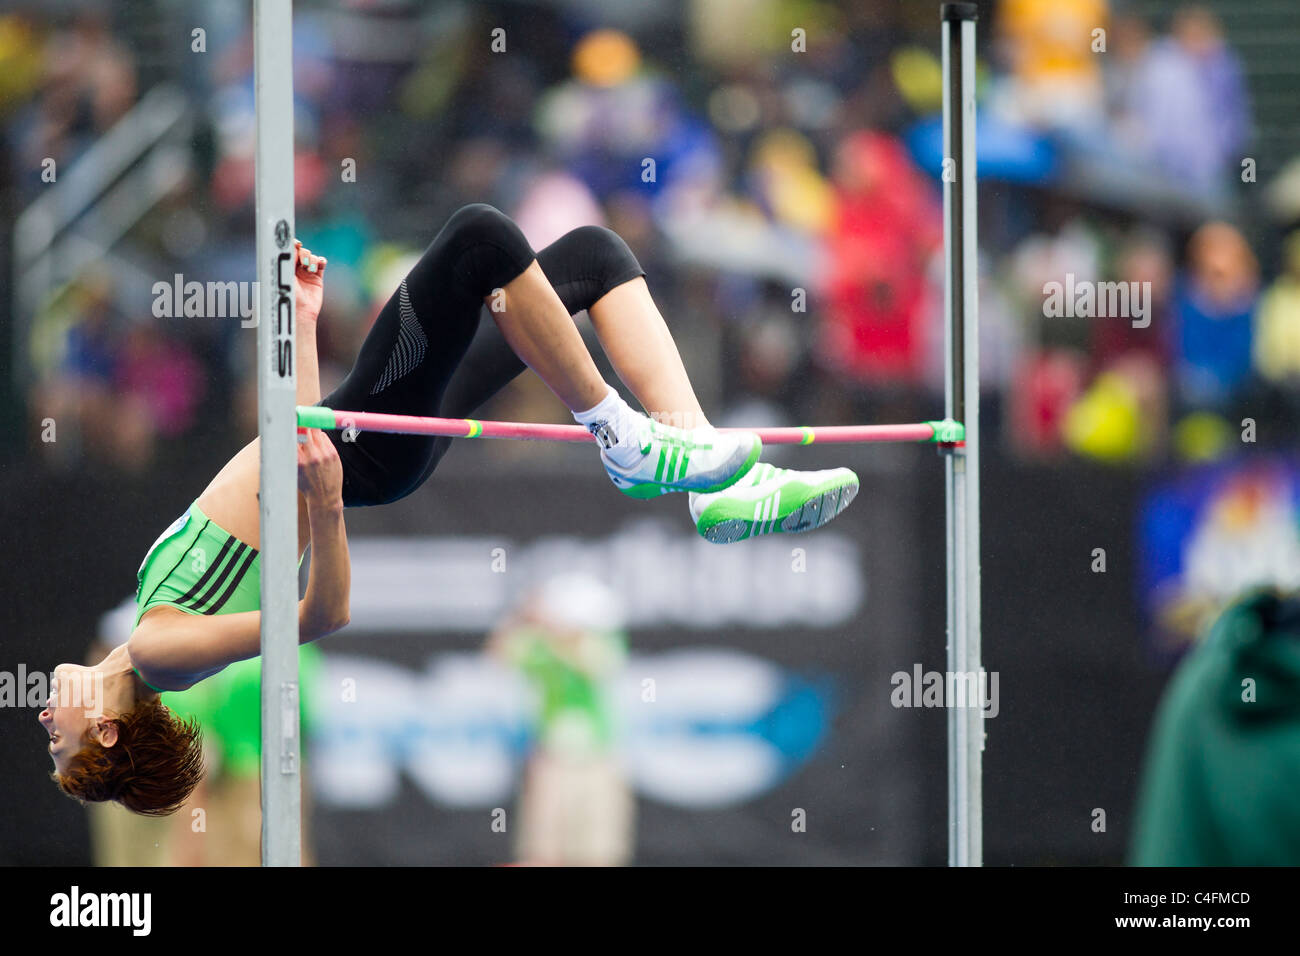 Blanka Vlasic (CRO) competing in the women's high jump at the 2011 NYC Grand Prix Track and Field competition. - Stock Image